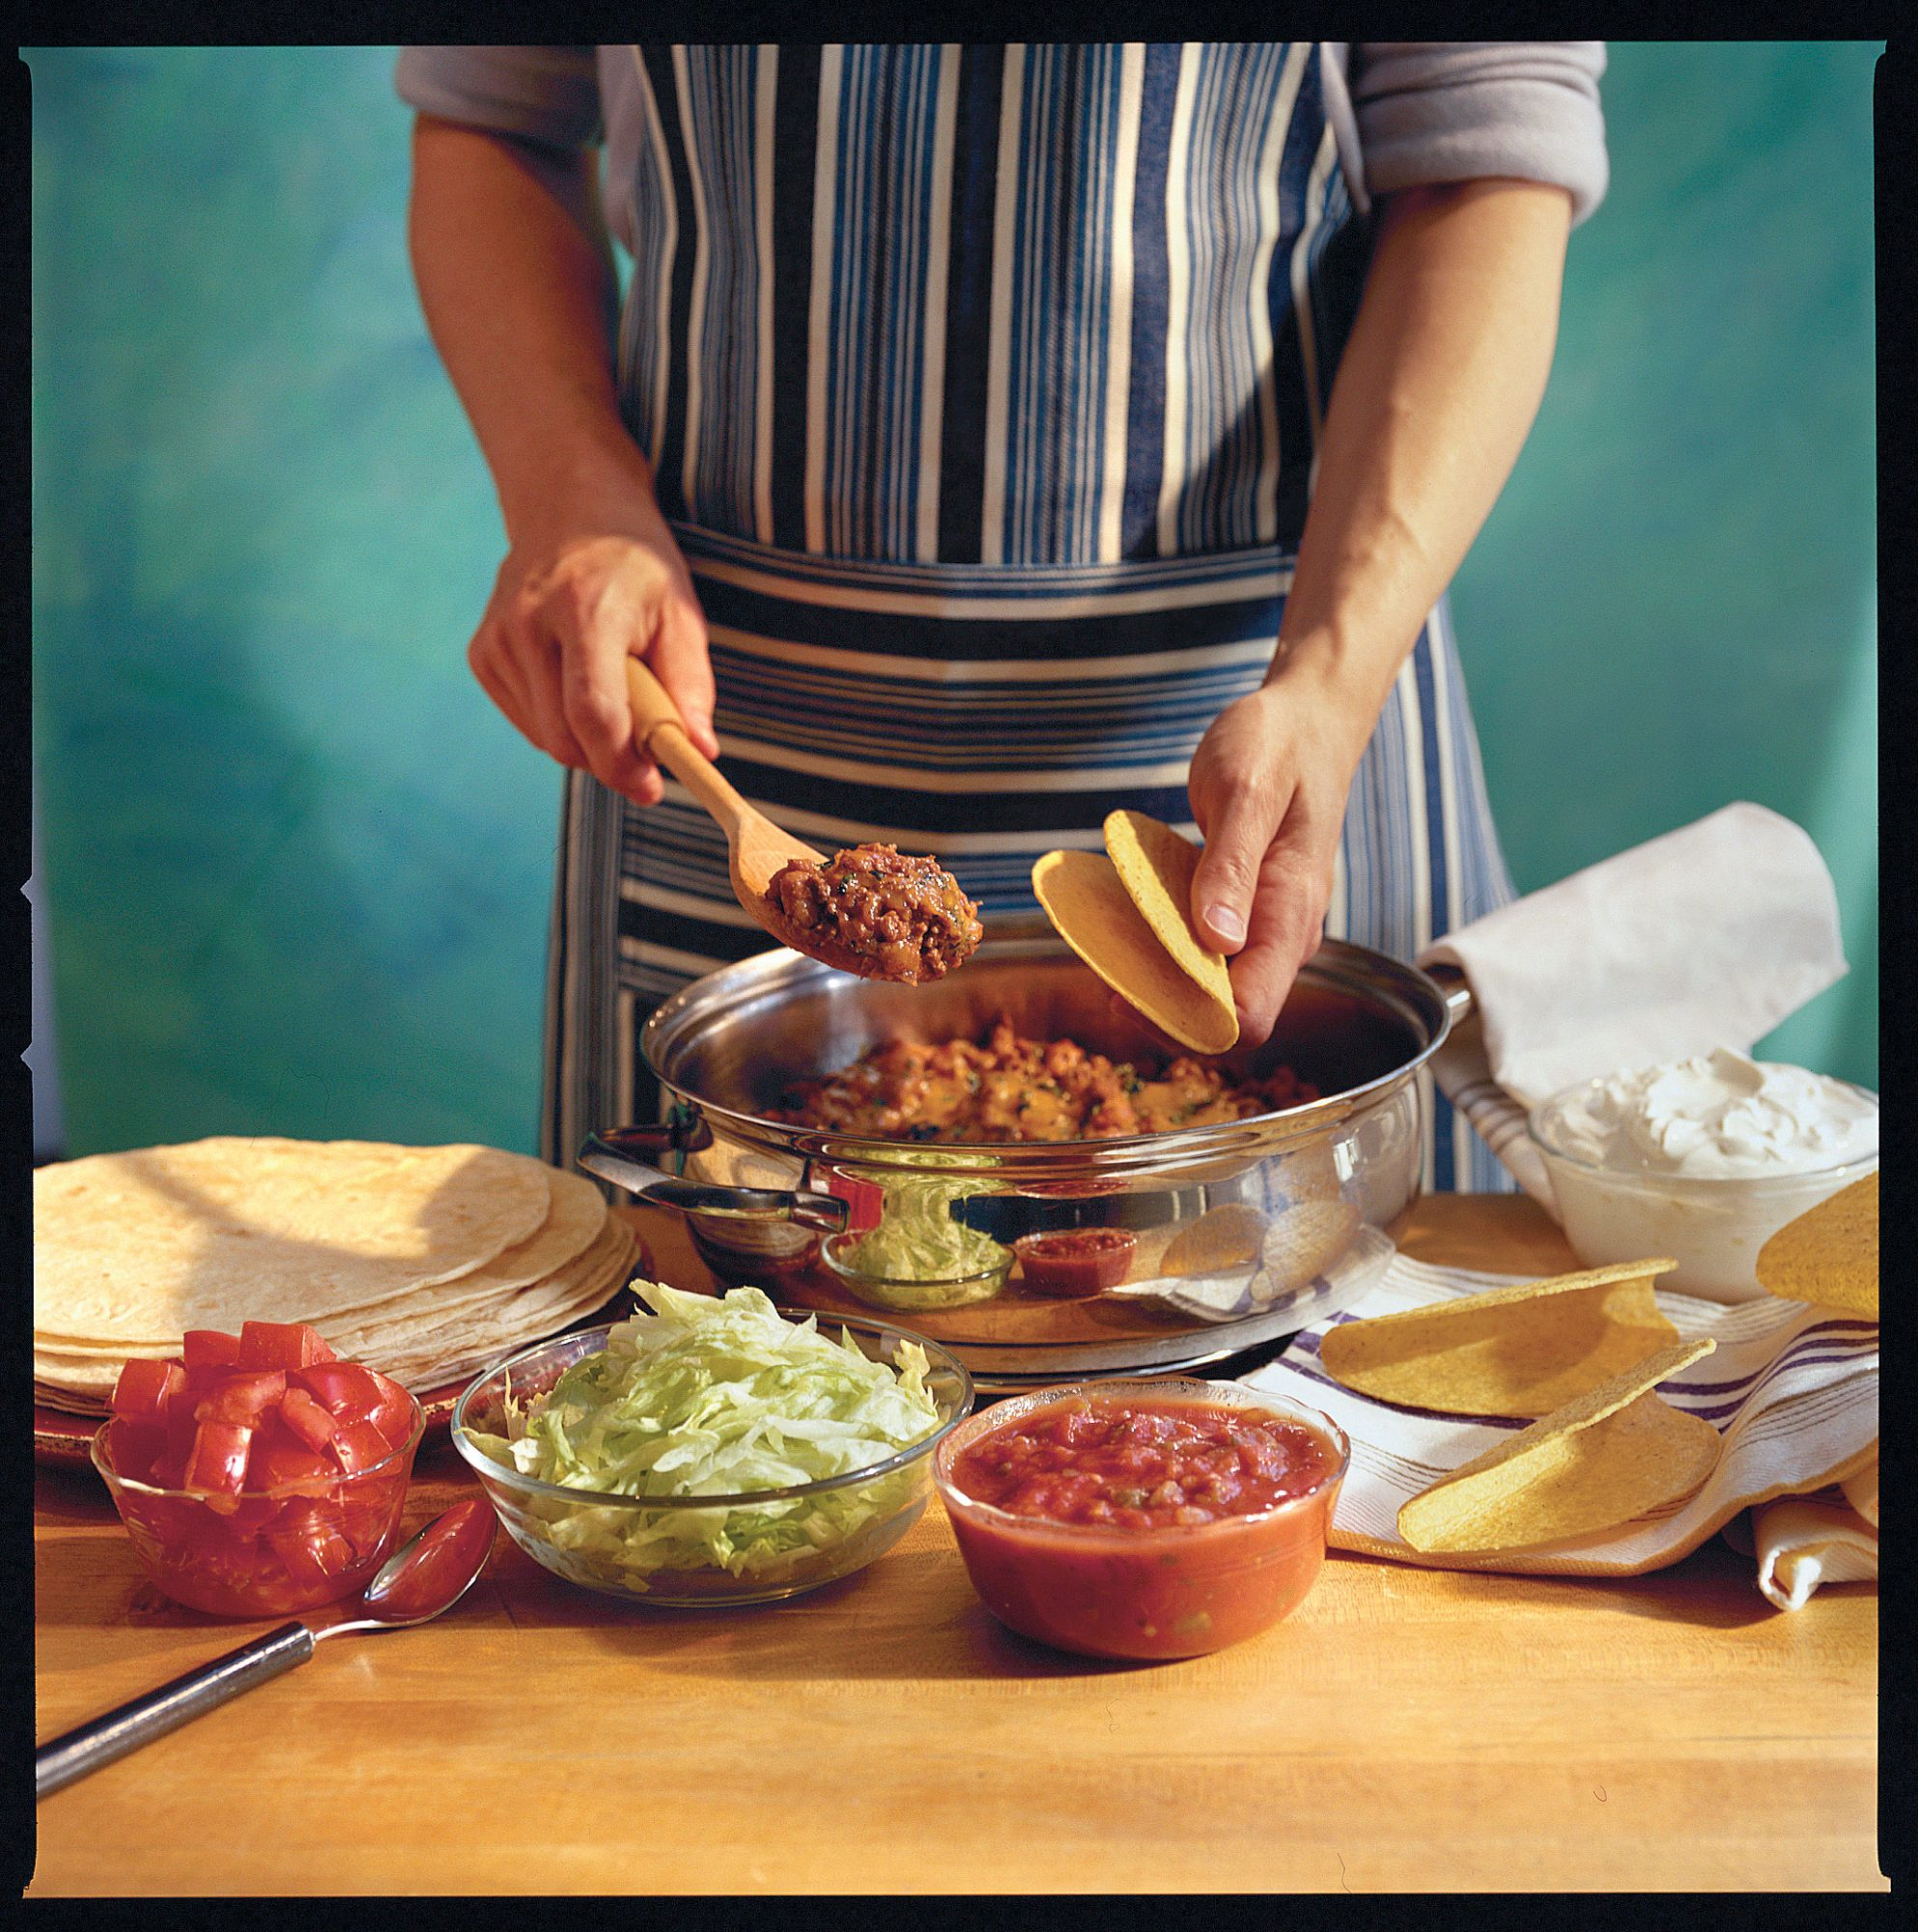 Ground Beef Recipes: Easy Skillet Tacos